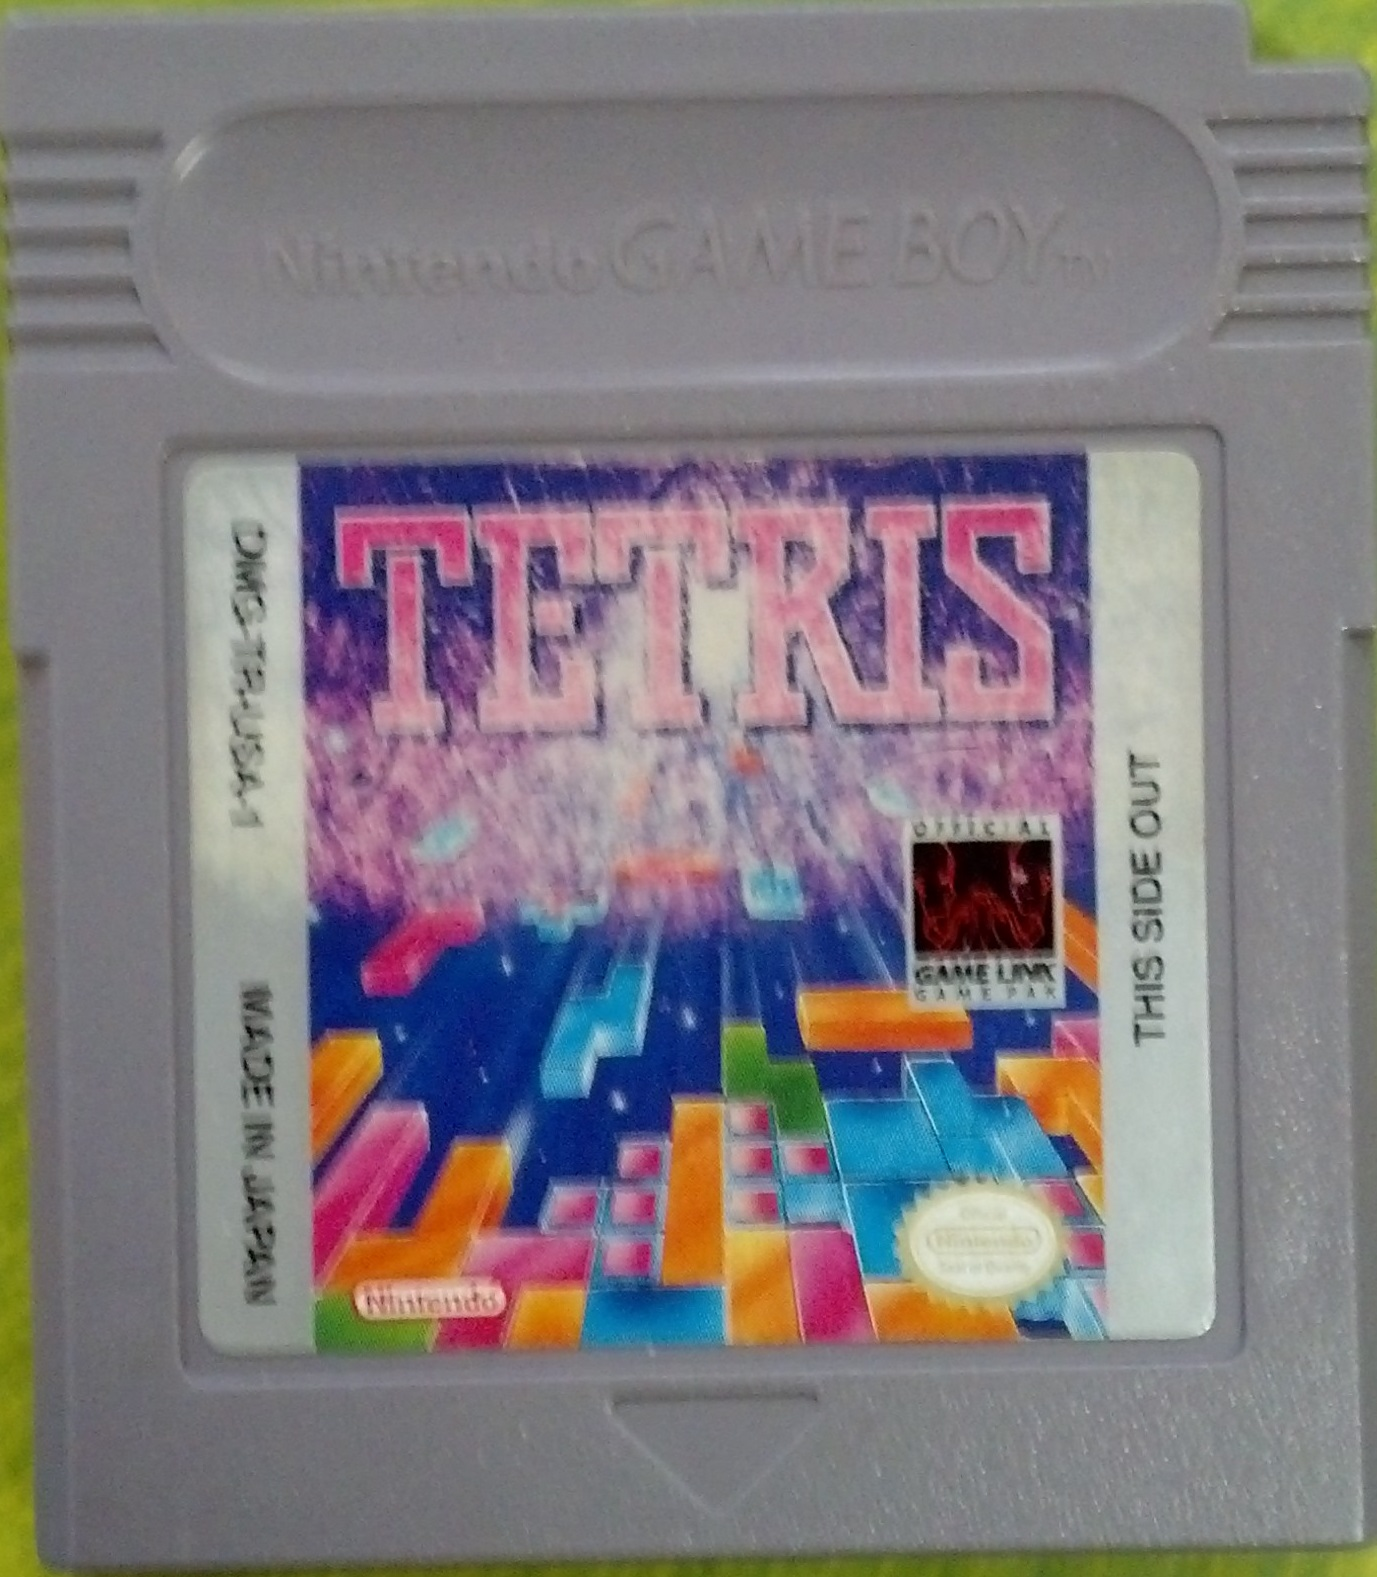 The Second Hand Gamer Cheats For Pc Playstation Ps2 Xbox Dreamcast N64 And Game Boy Apps Tetris What Is There Not To Love About It